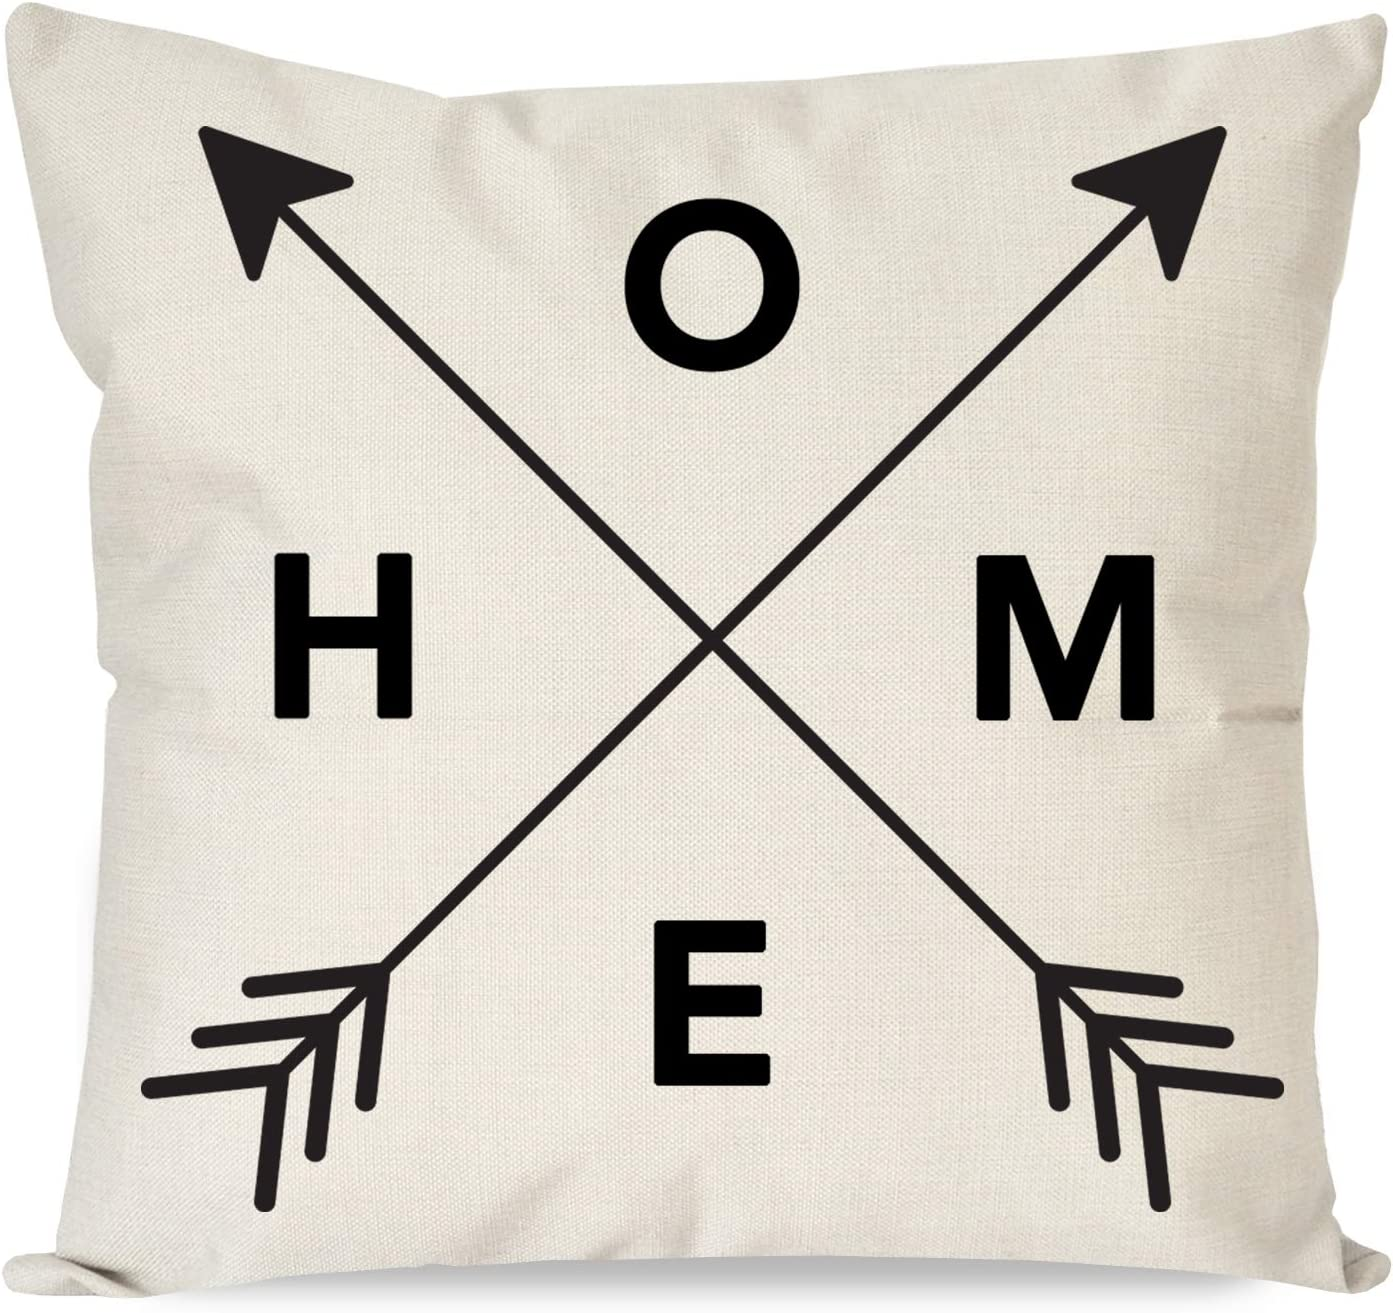 PANDICORN Farmhouse Arrow Pillow Covers 18x18 with Words Home for Farmhouse Décor, Rustic Black and Cream Throw Pillow Cases for Living Room Bedroom